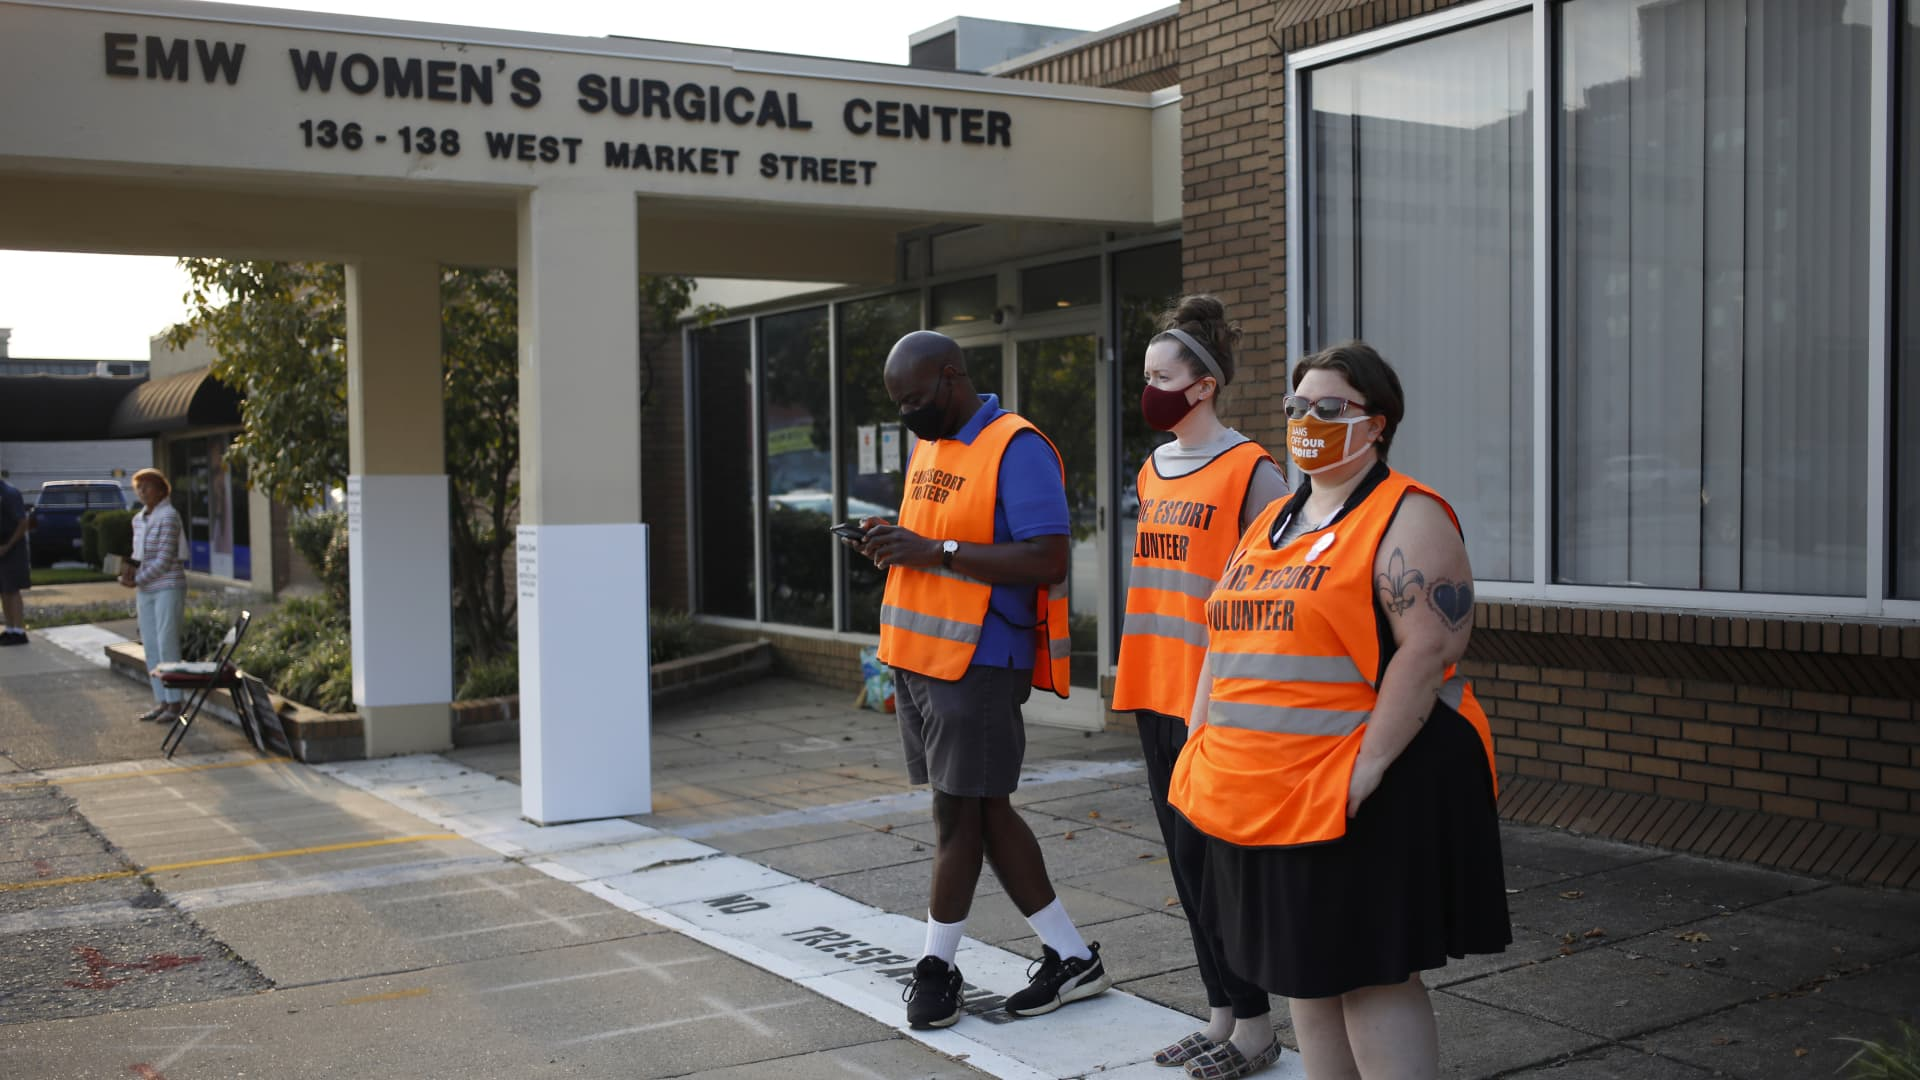 Volunteer clinic escorts wait for patients outside the EMW Women's Surgical Center in Louisville, Kentucky, U.S., on Tuesday, Sept. 28, 2021.